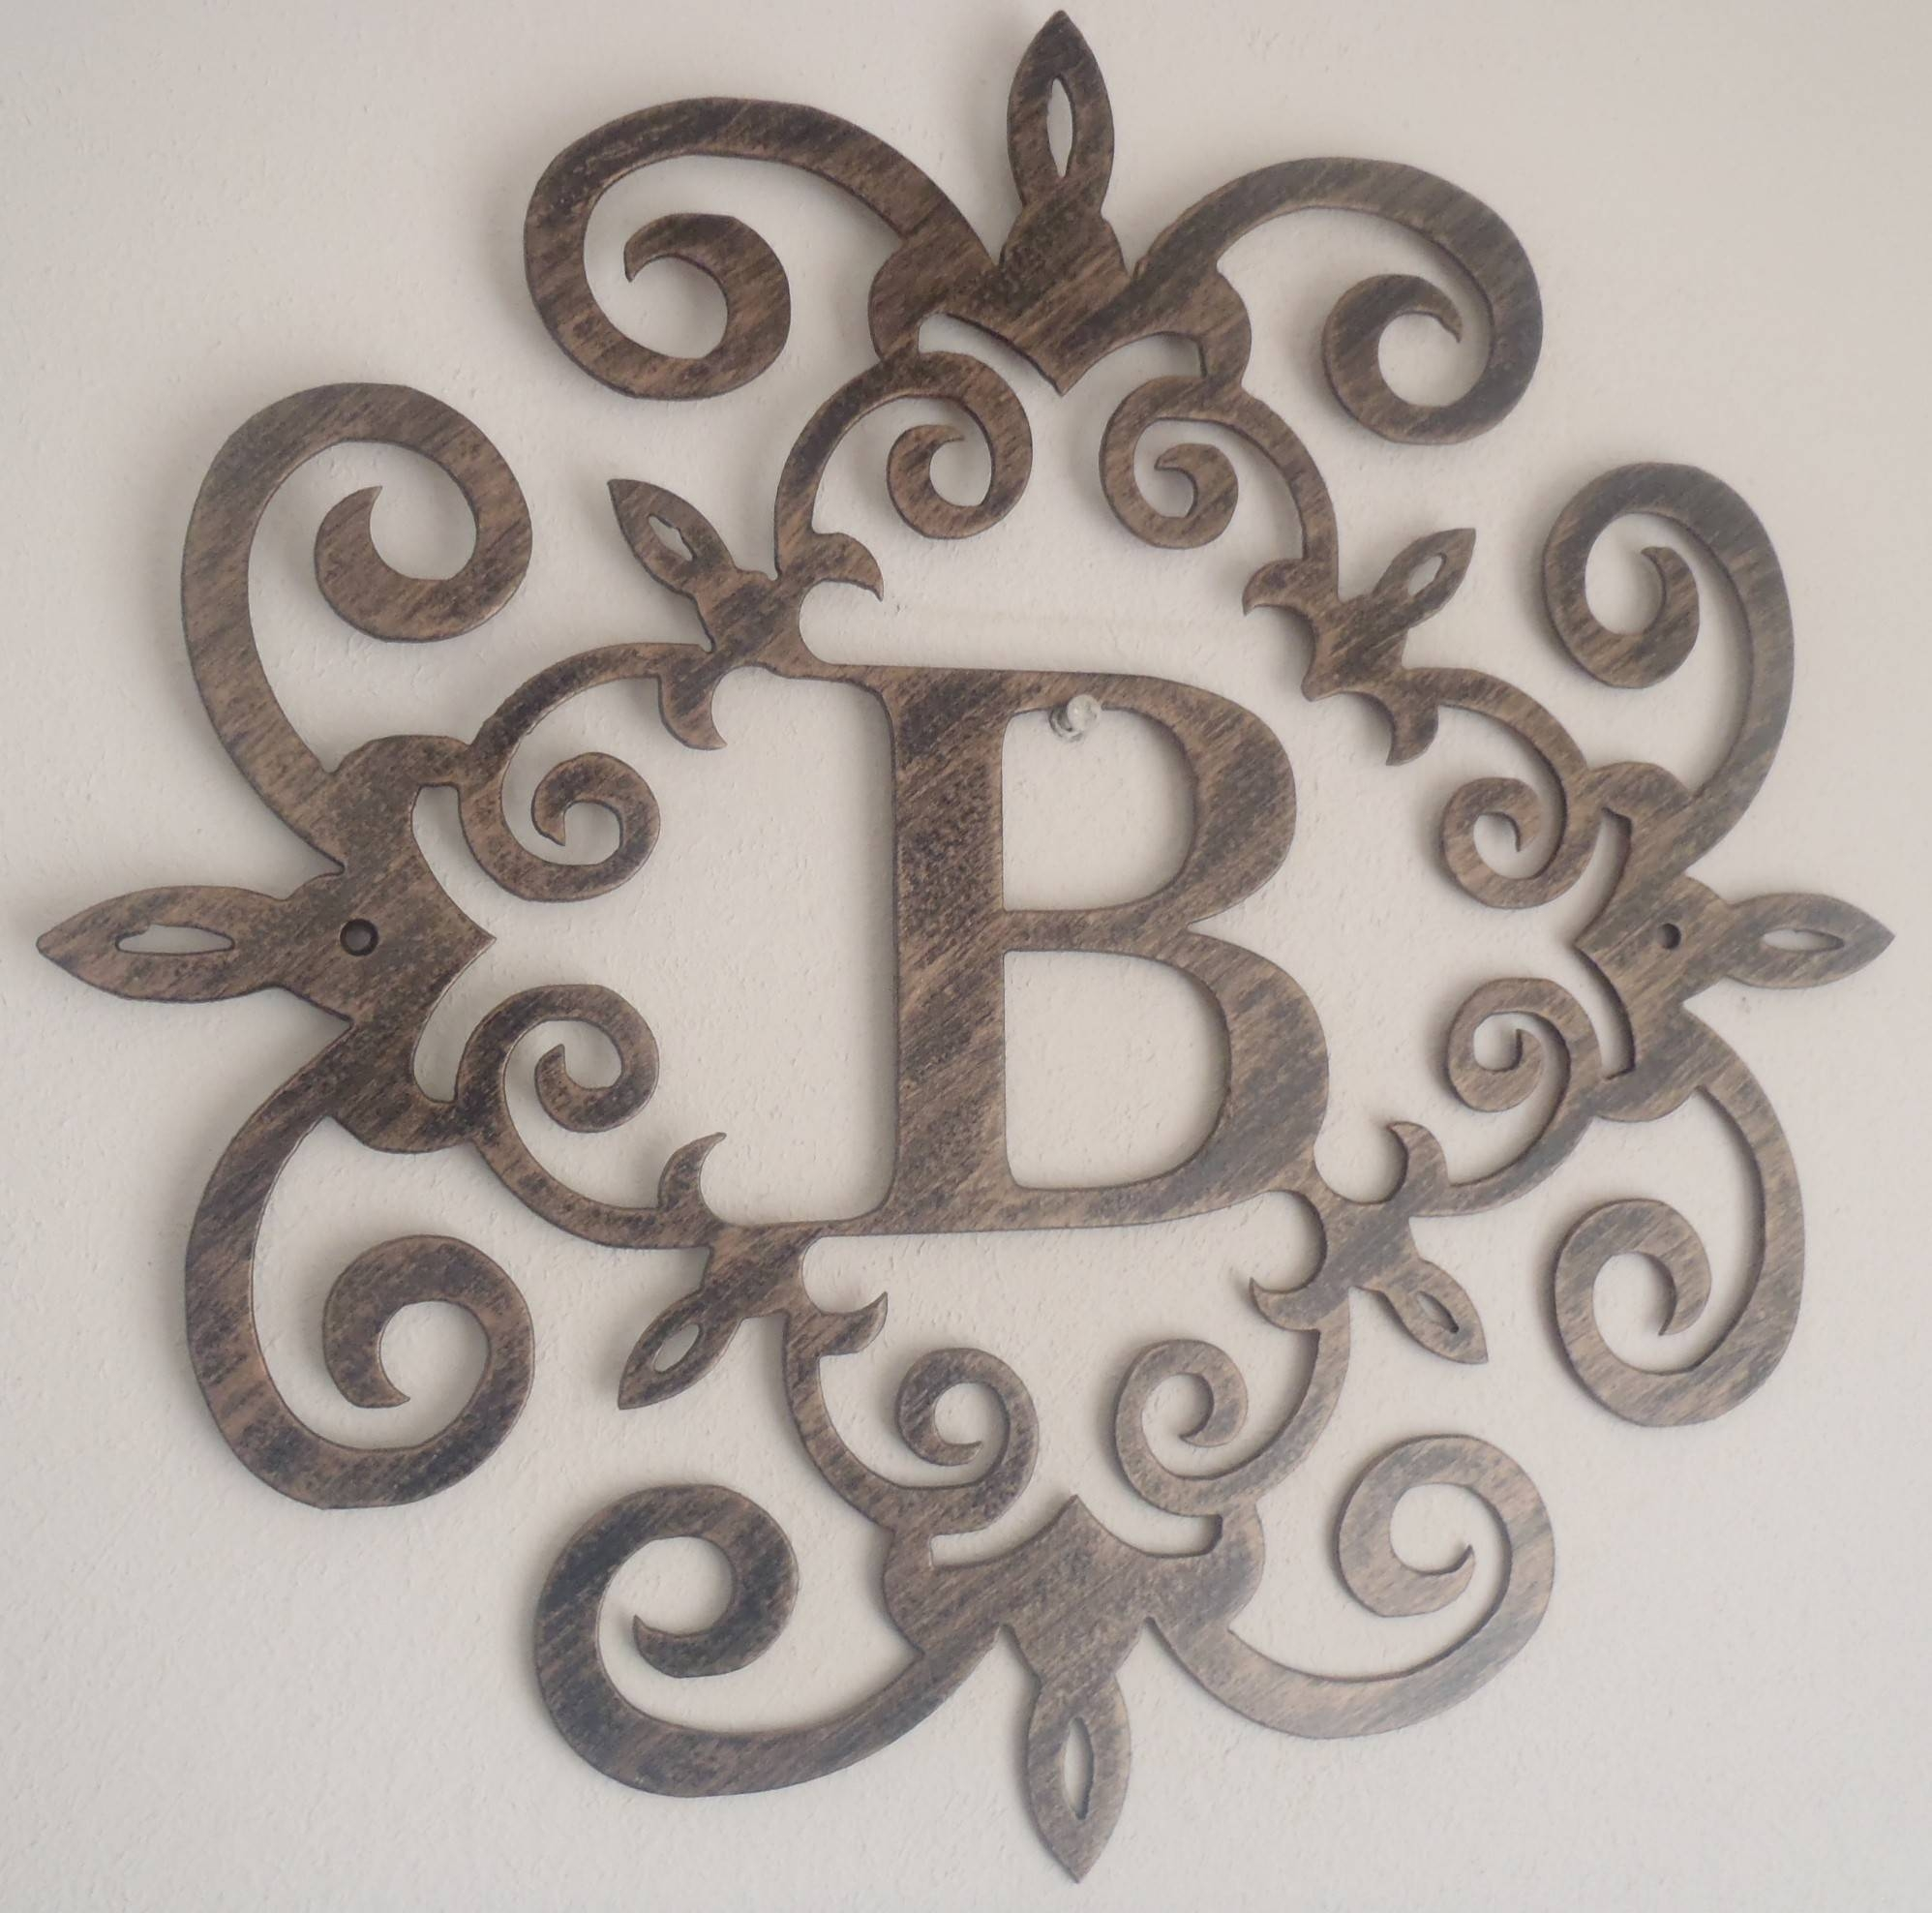 Decorating Large Metal Letters For Wall Decor | Jeffsbakery In Latest Giant Metal Wall Art (View 6 of 20)